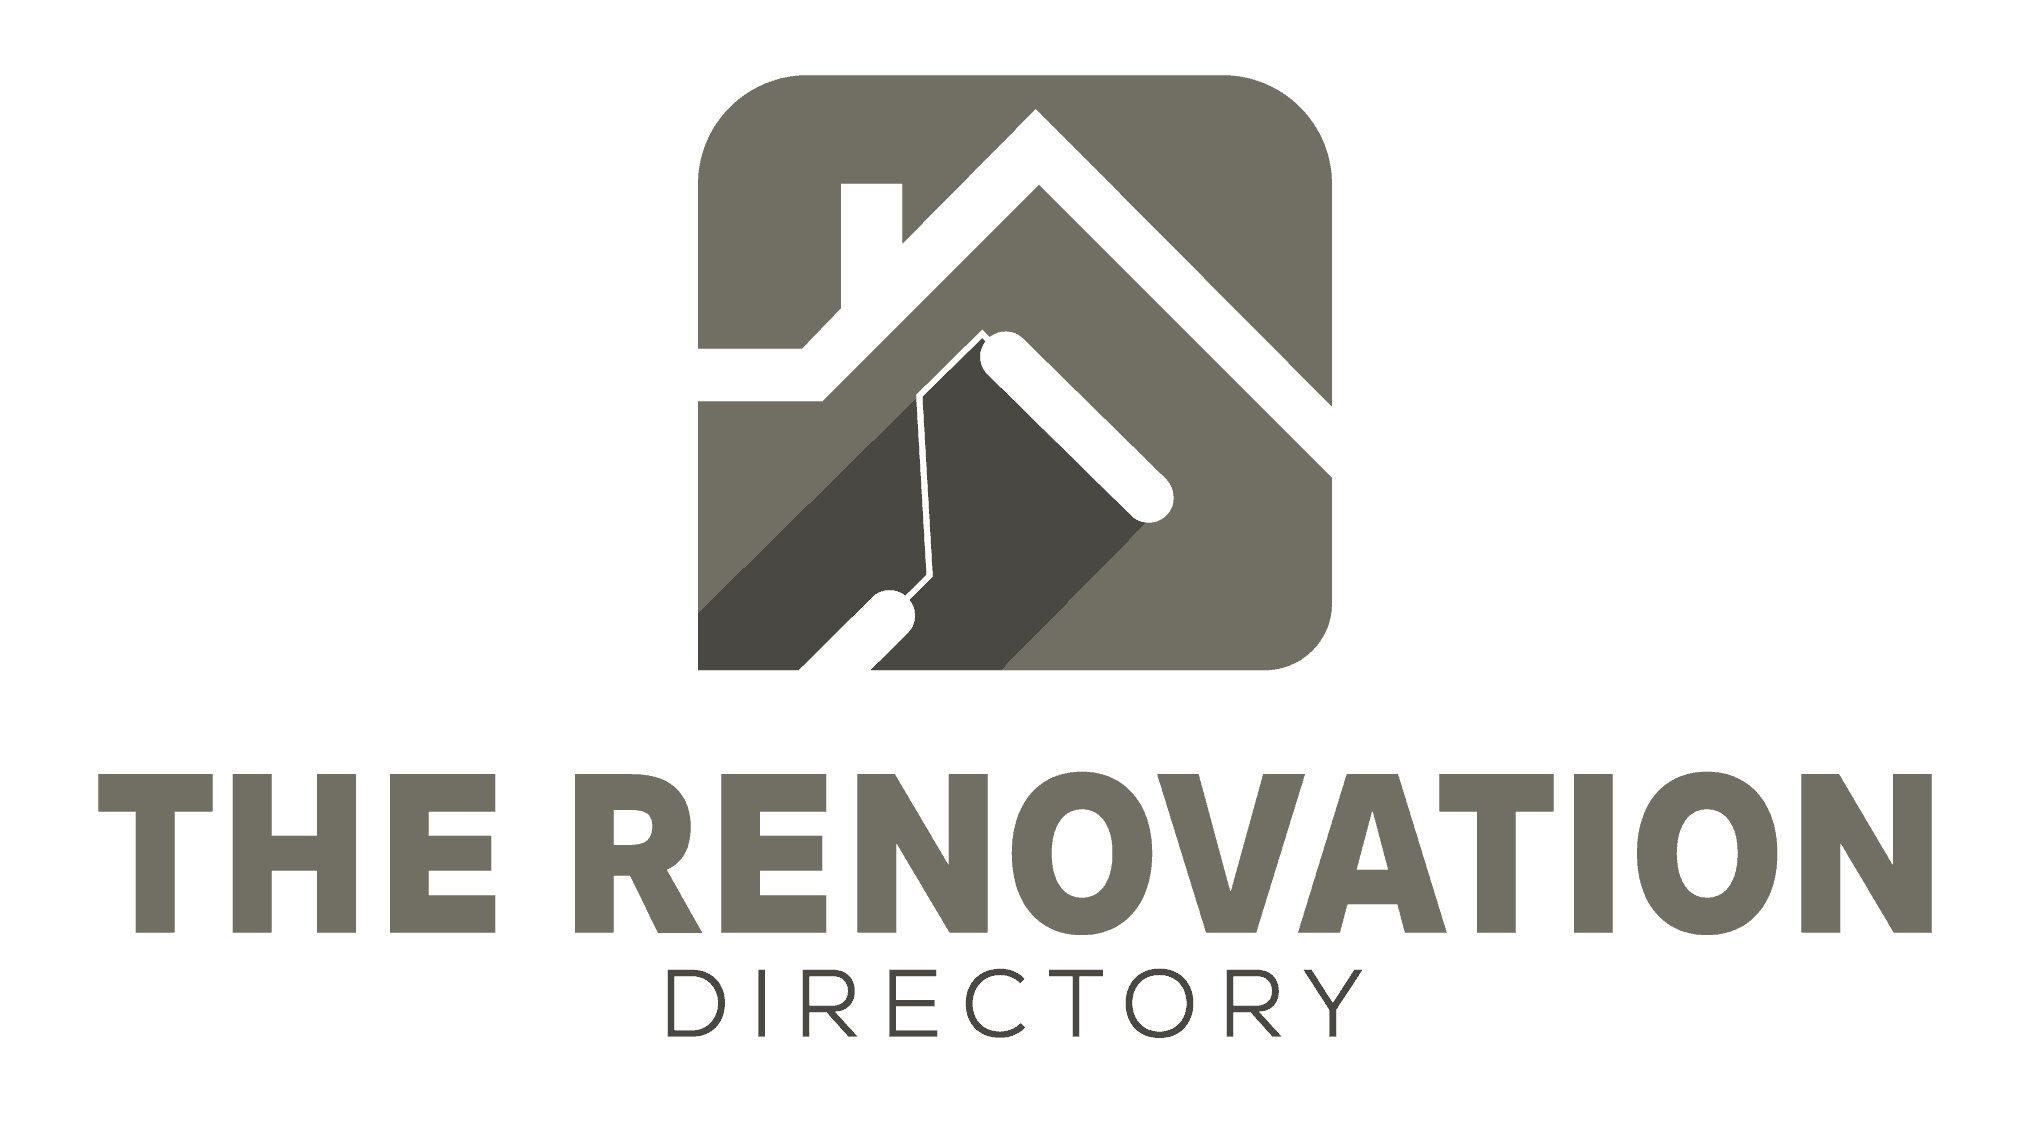 Renovation Directory